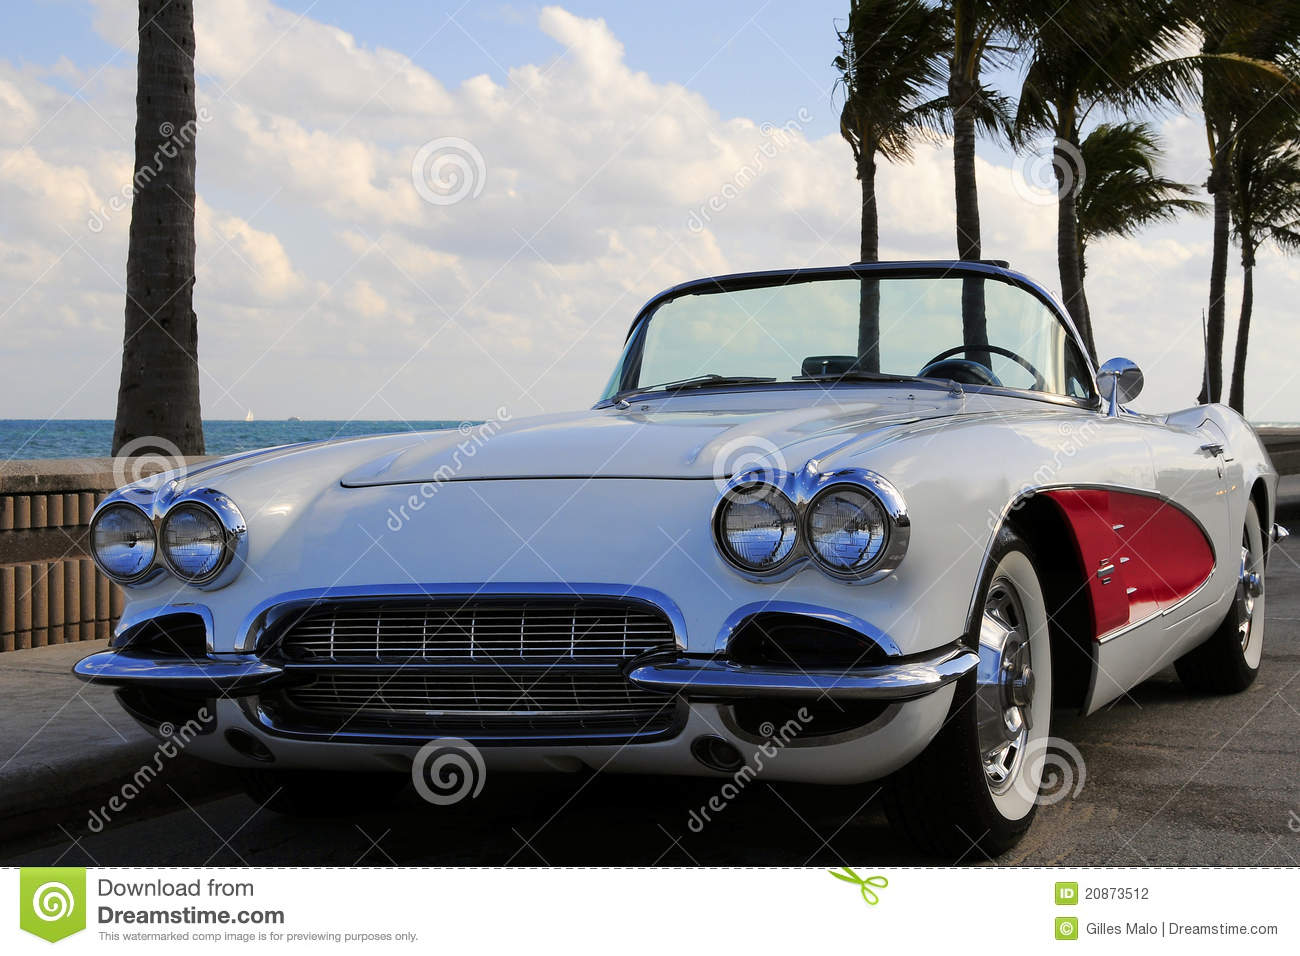 Retro Sports Car At The Beach Stock Photography - Image 20873512-4322